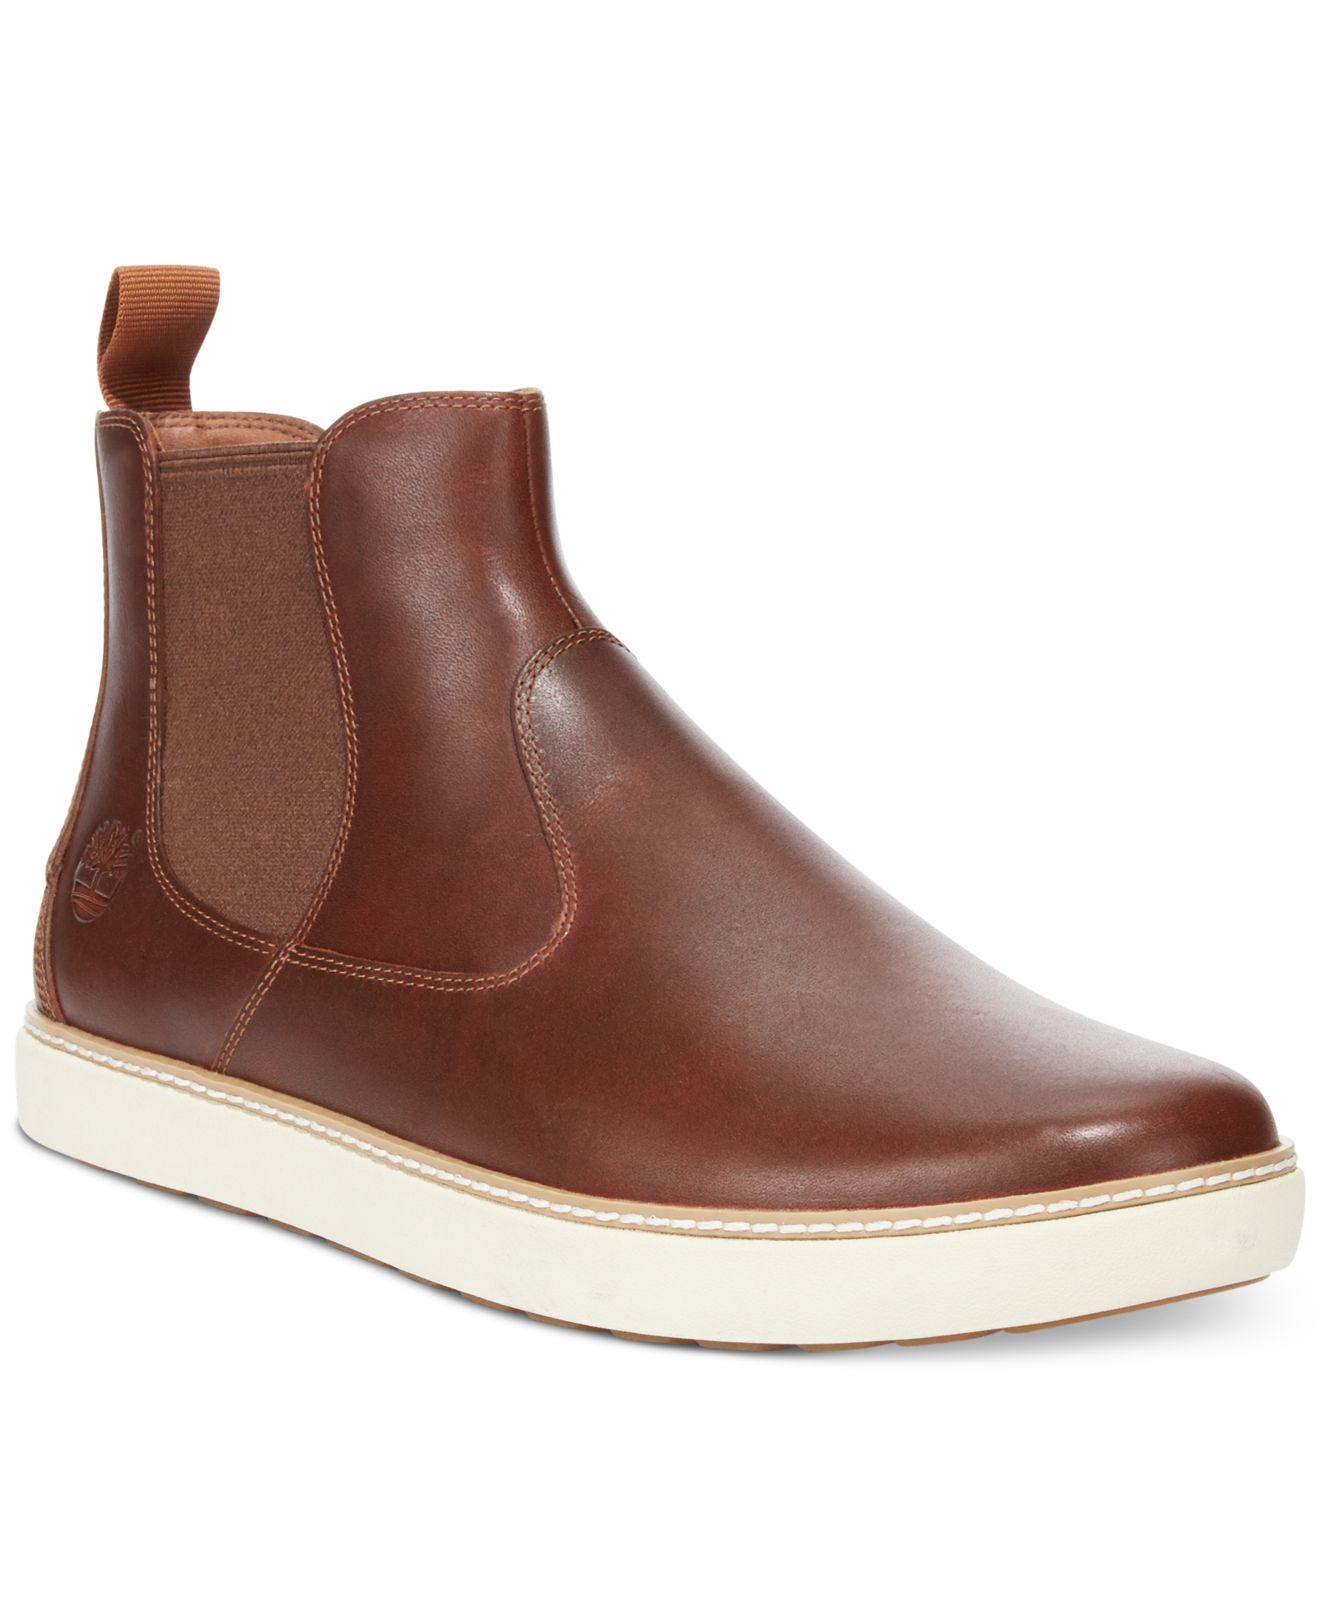 timberland earthkeepers hudston chelsea boots in brown for men lyst. Black Bedroom Furniture Sets. Home Design Ideas